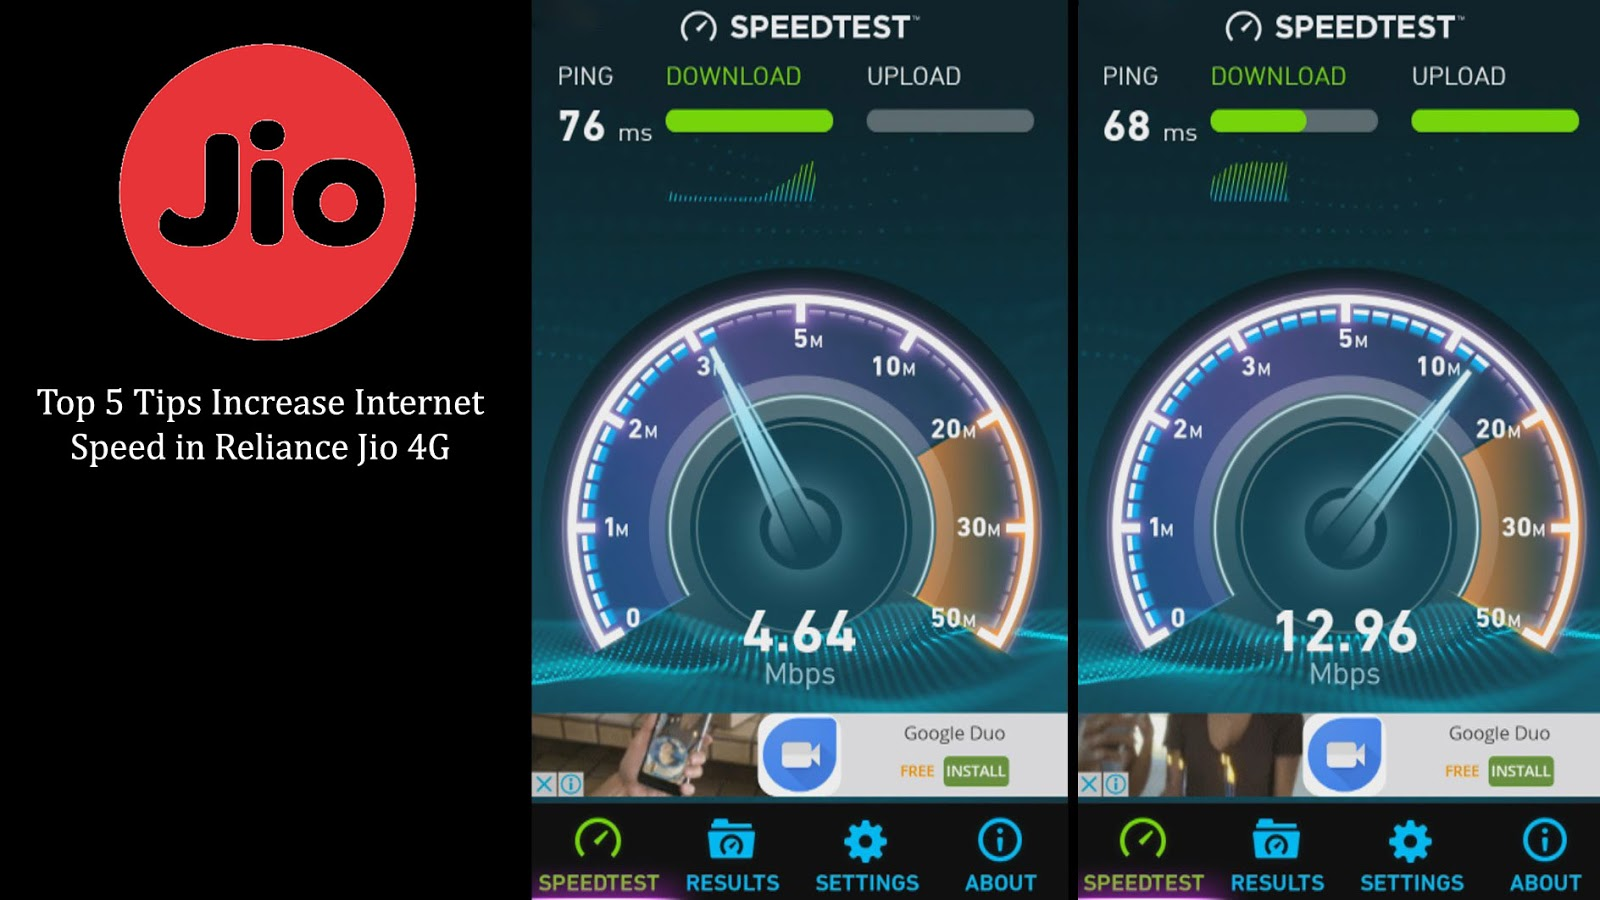 Top 5 Tips Increase Internet Speed in Reliance Jio 4G